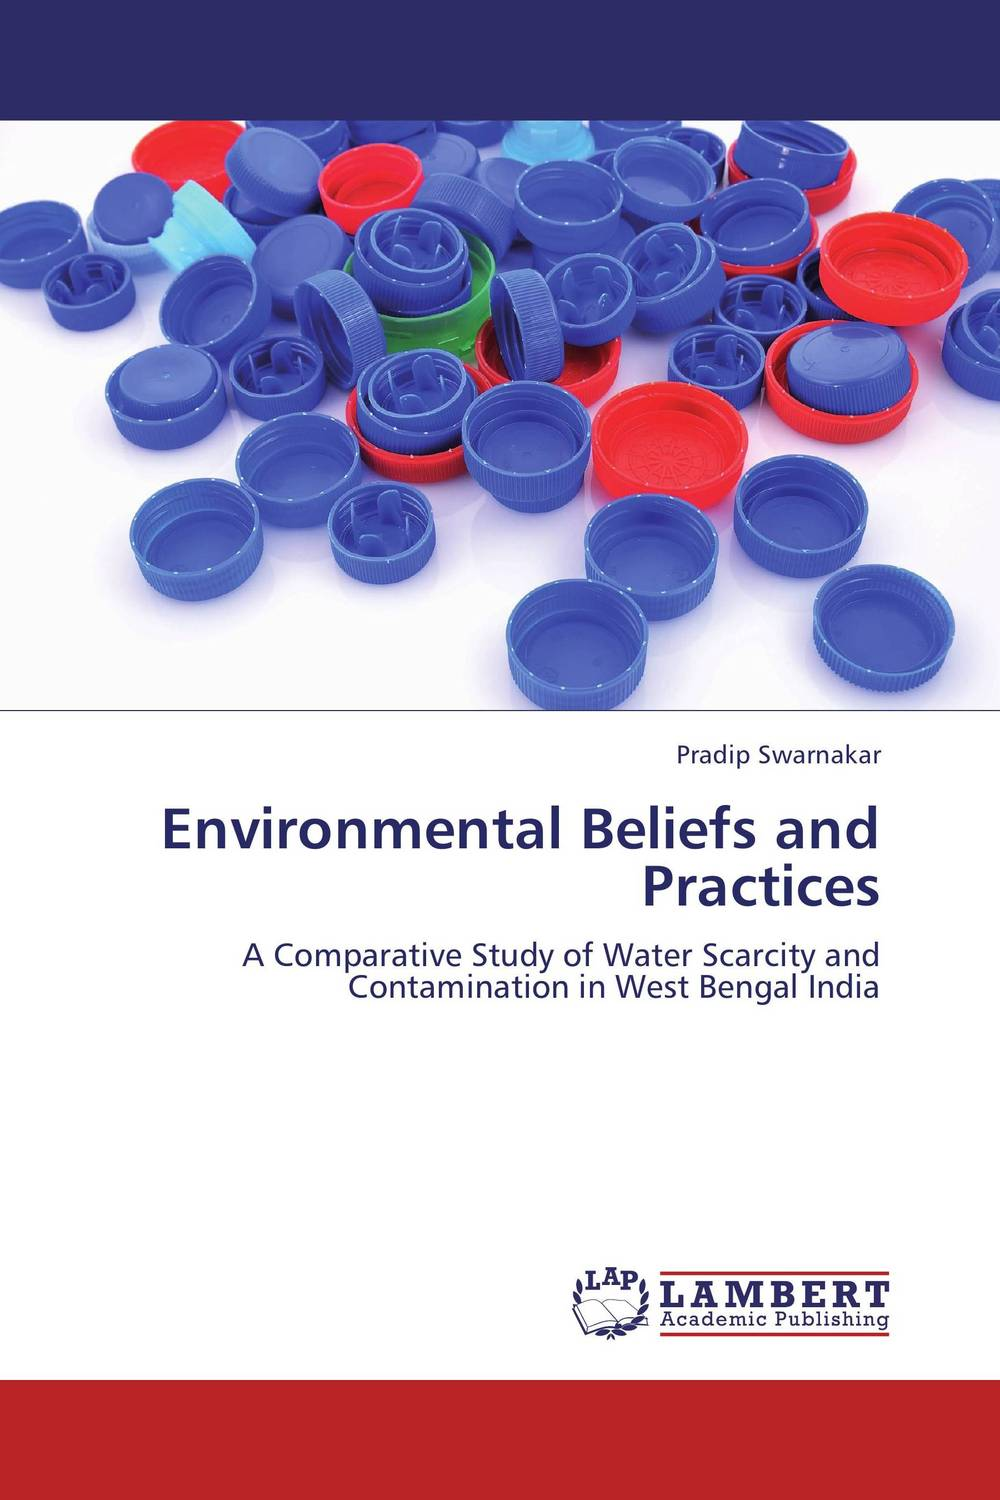 Environmental Beliefs and Practices folk beliefs and nourishment of environment